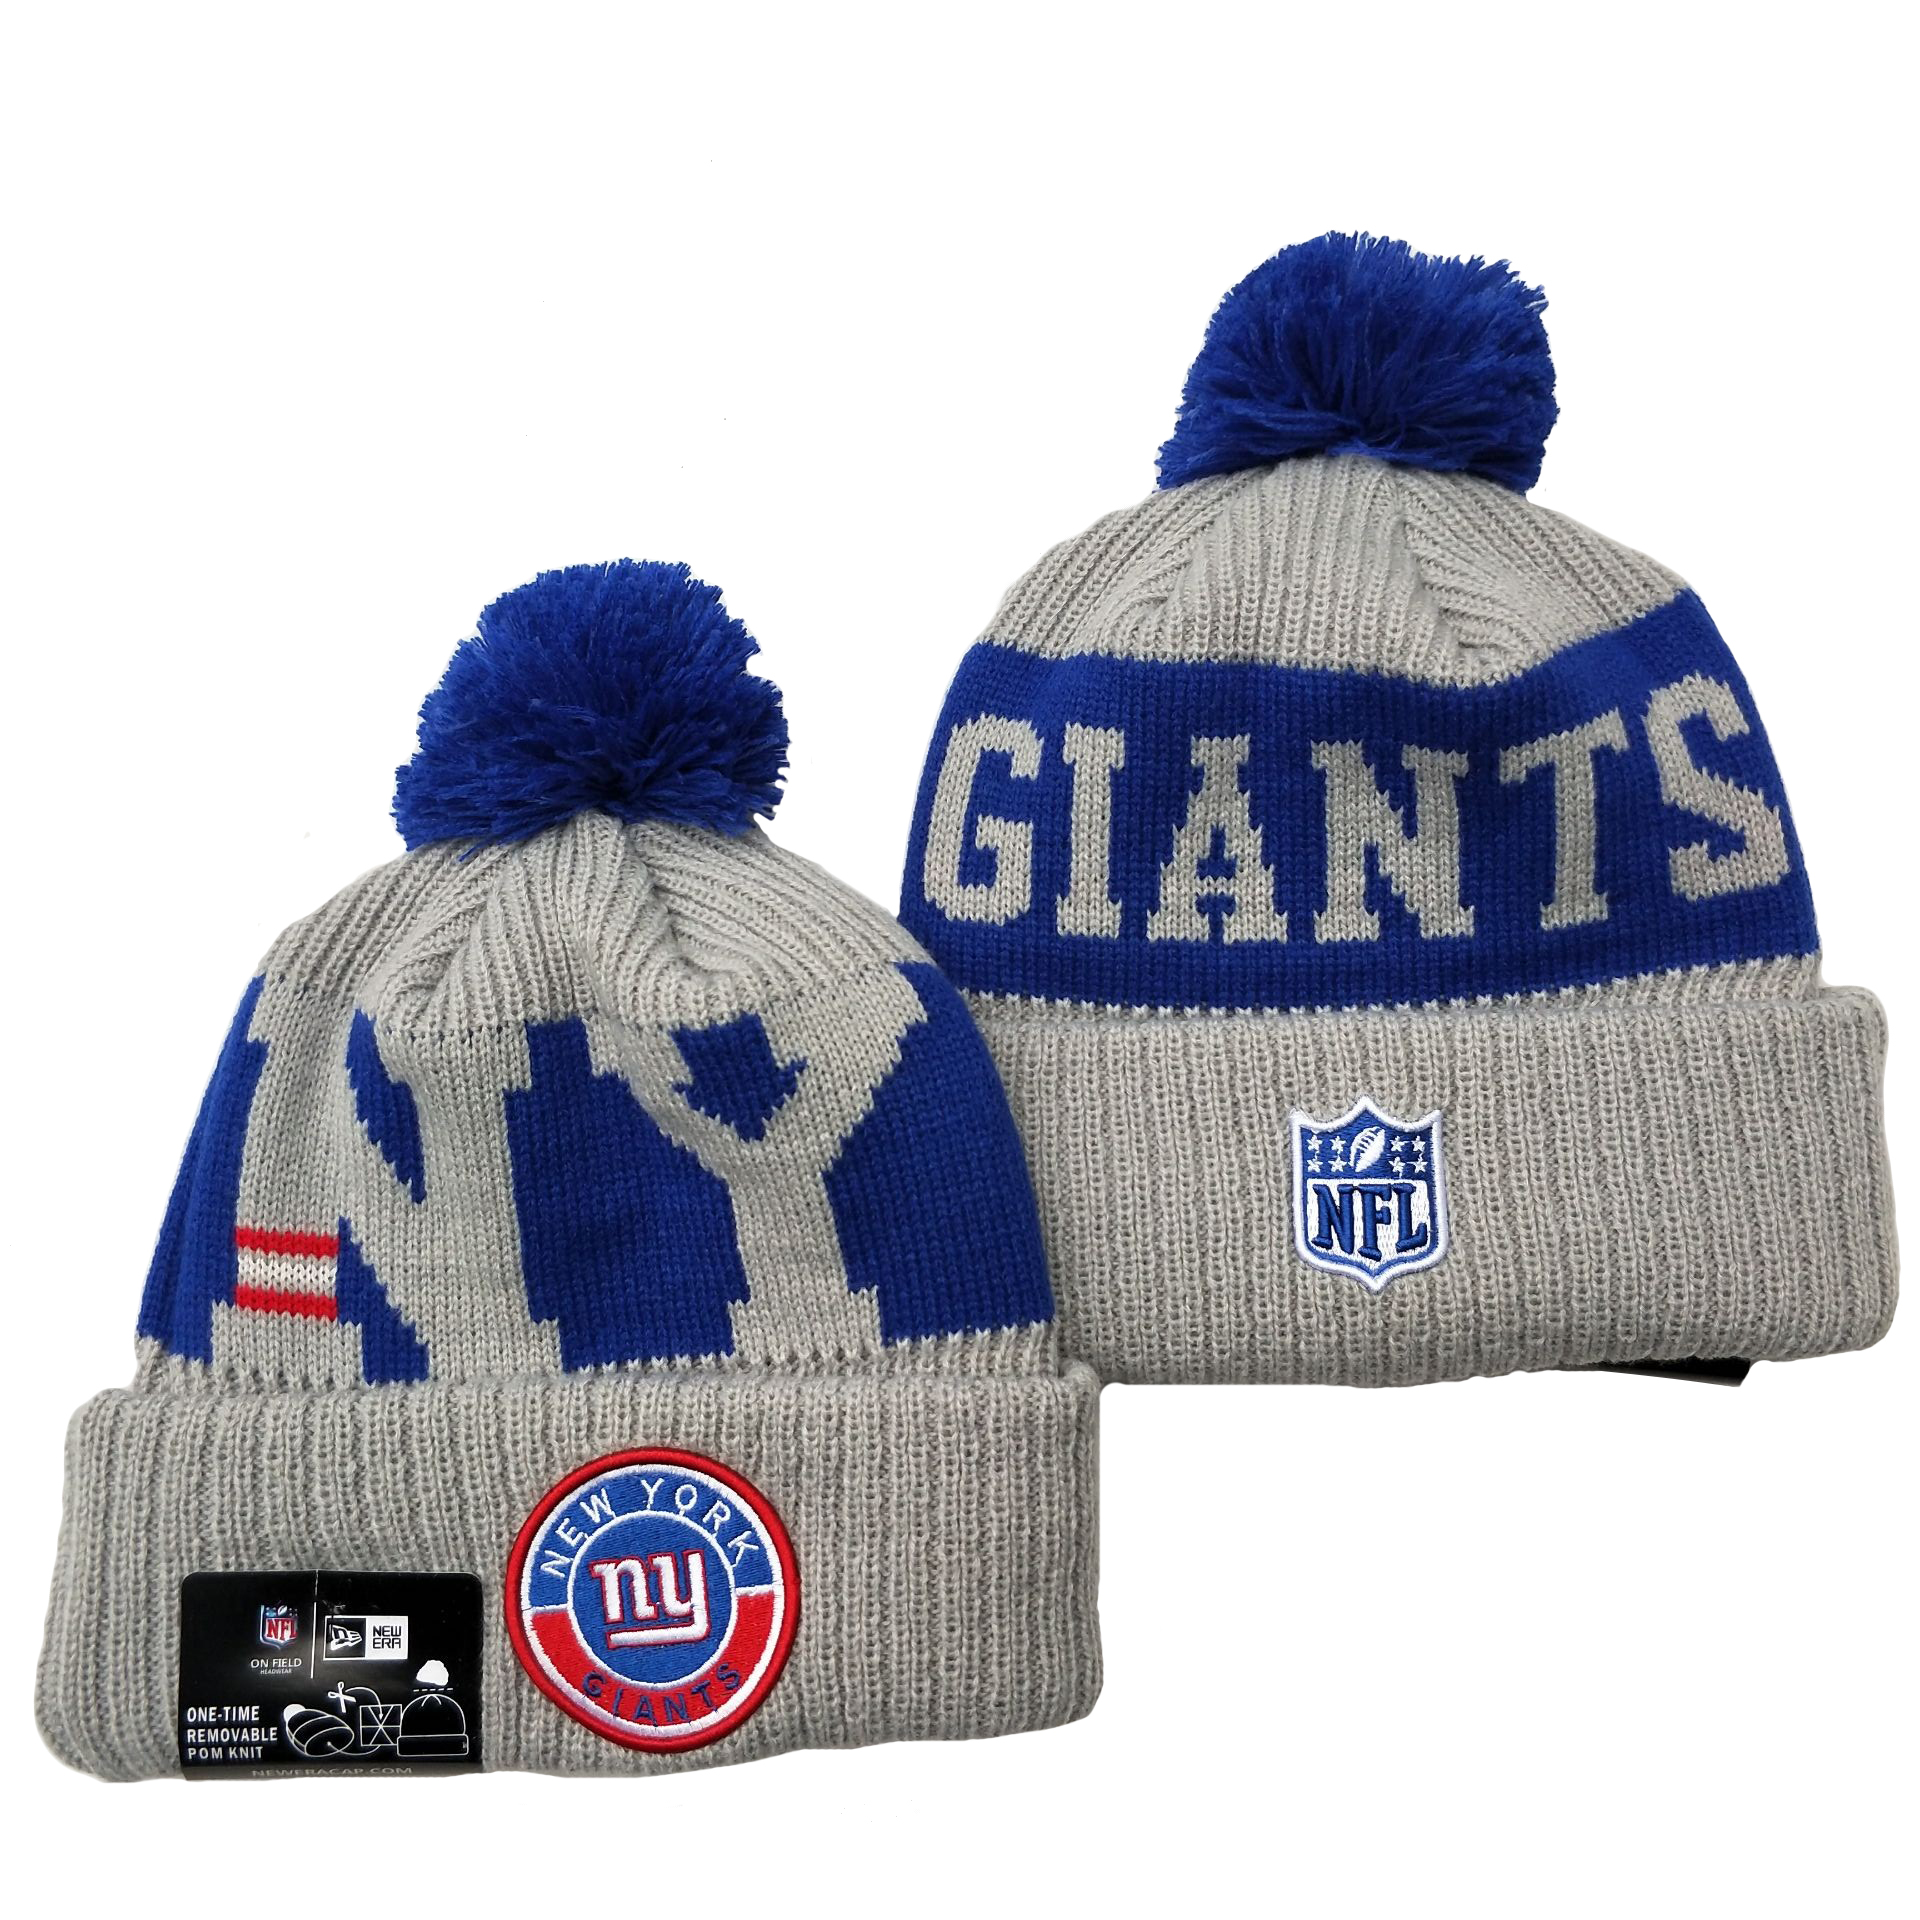 New York Giants Team Logo Gray 2020 NFL Sideline Pom Cuffed Knit Hat YD